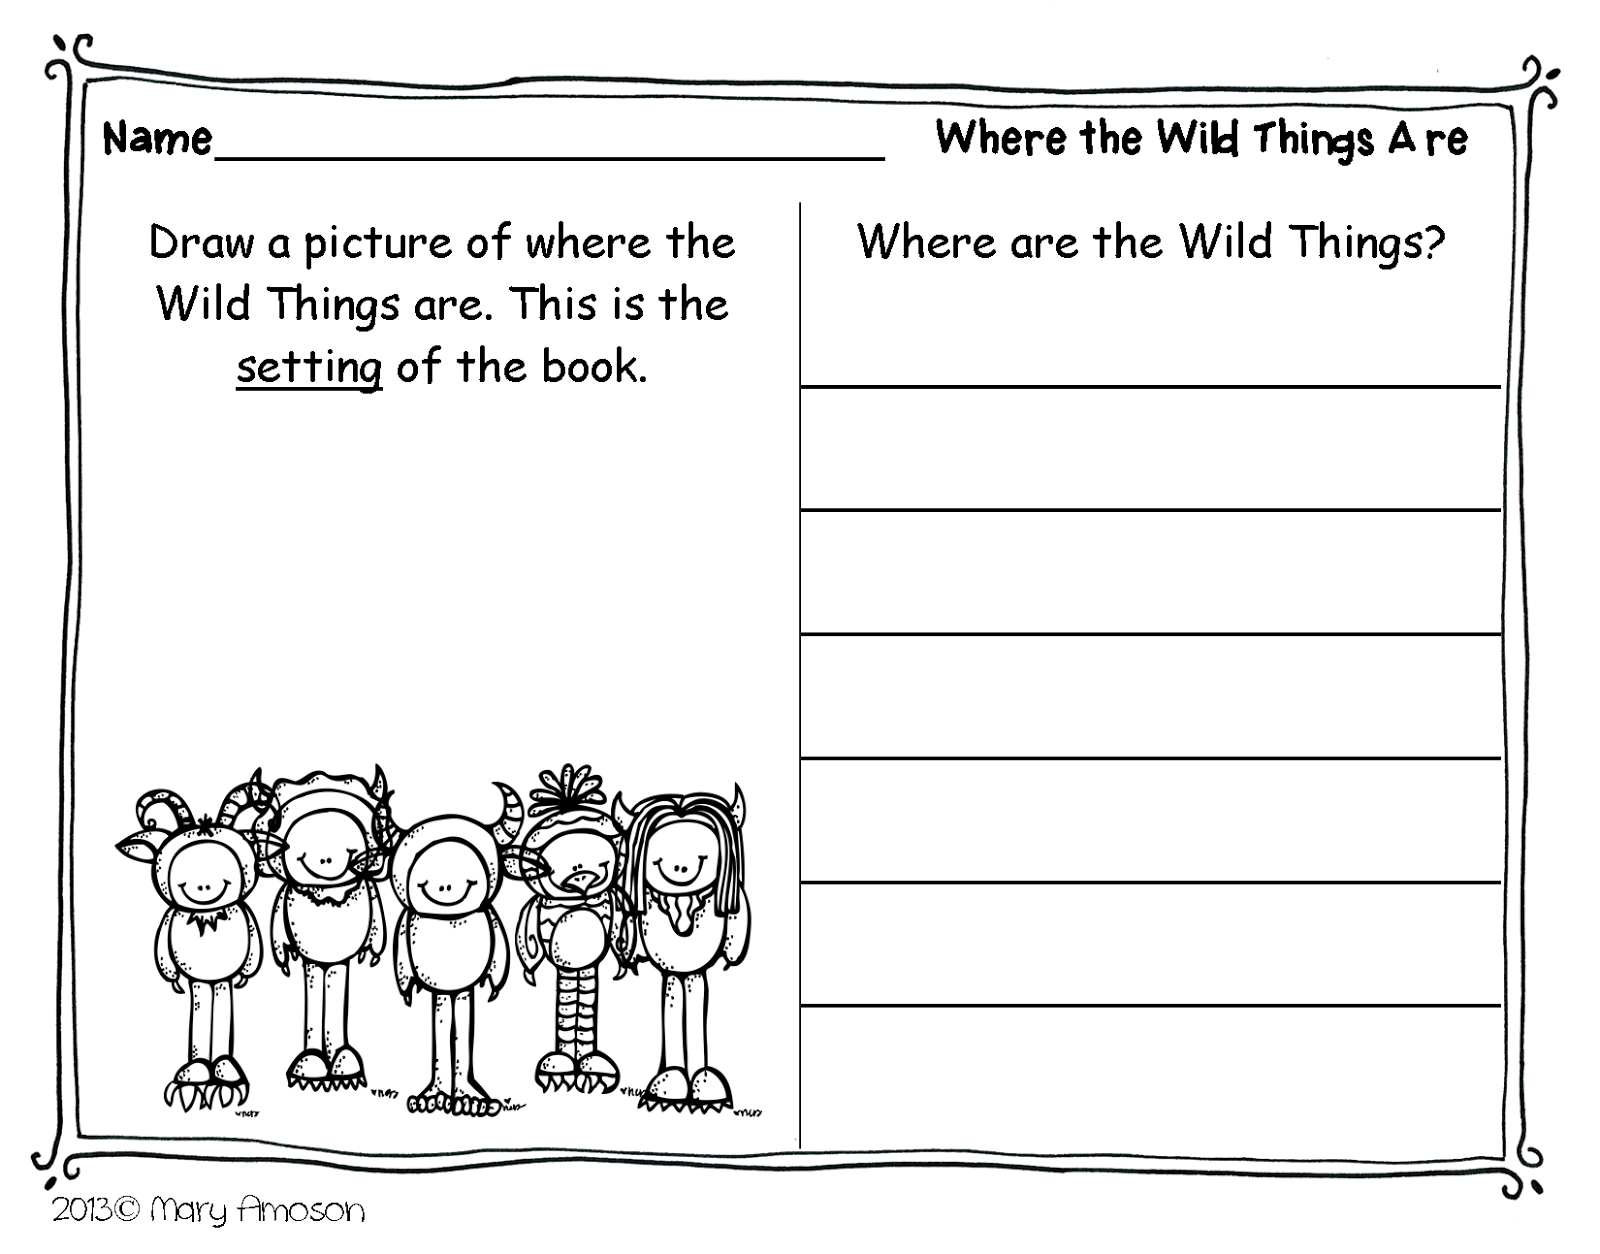 Where The Wild Things Are Worksheets And Activities - K5 Worksheets